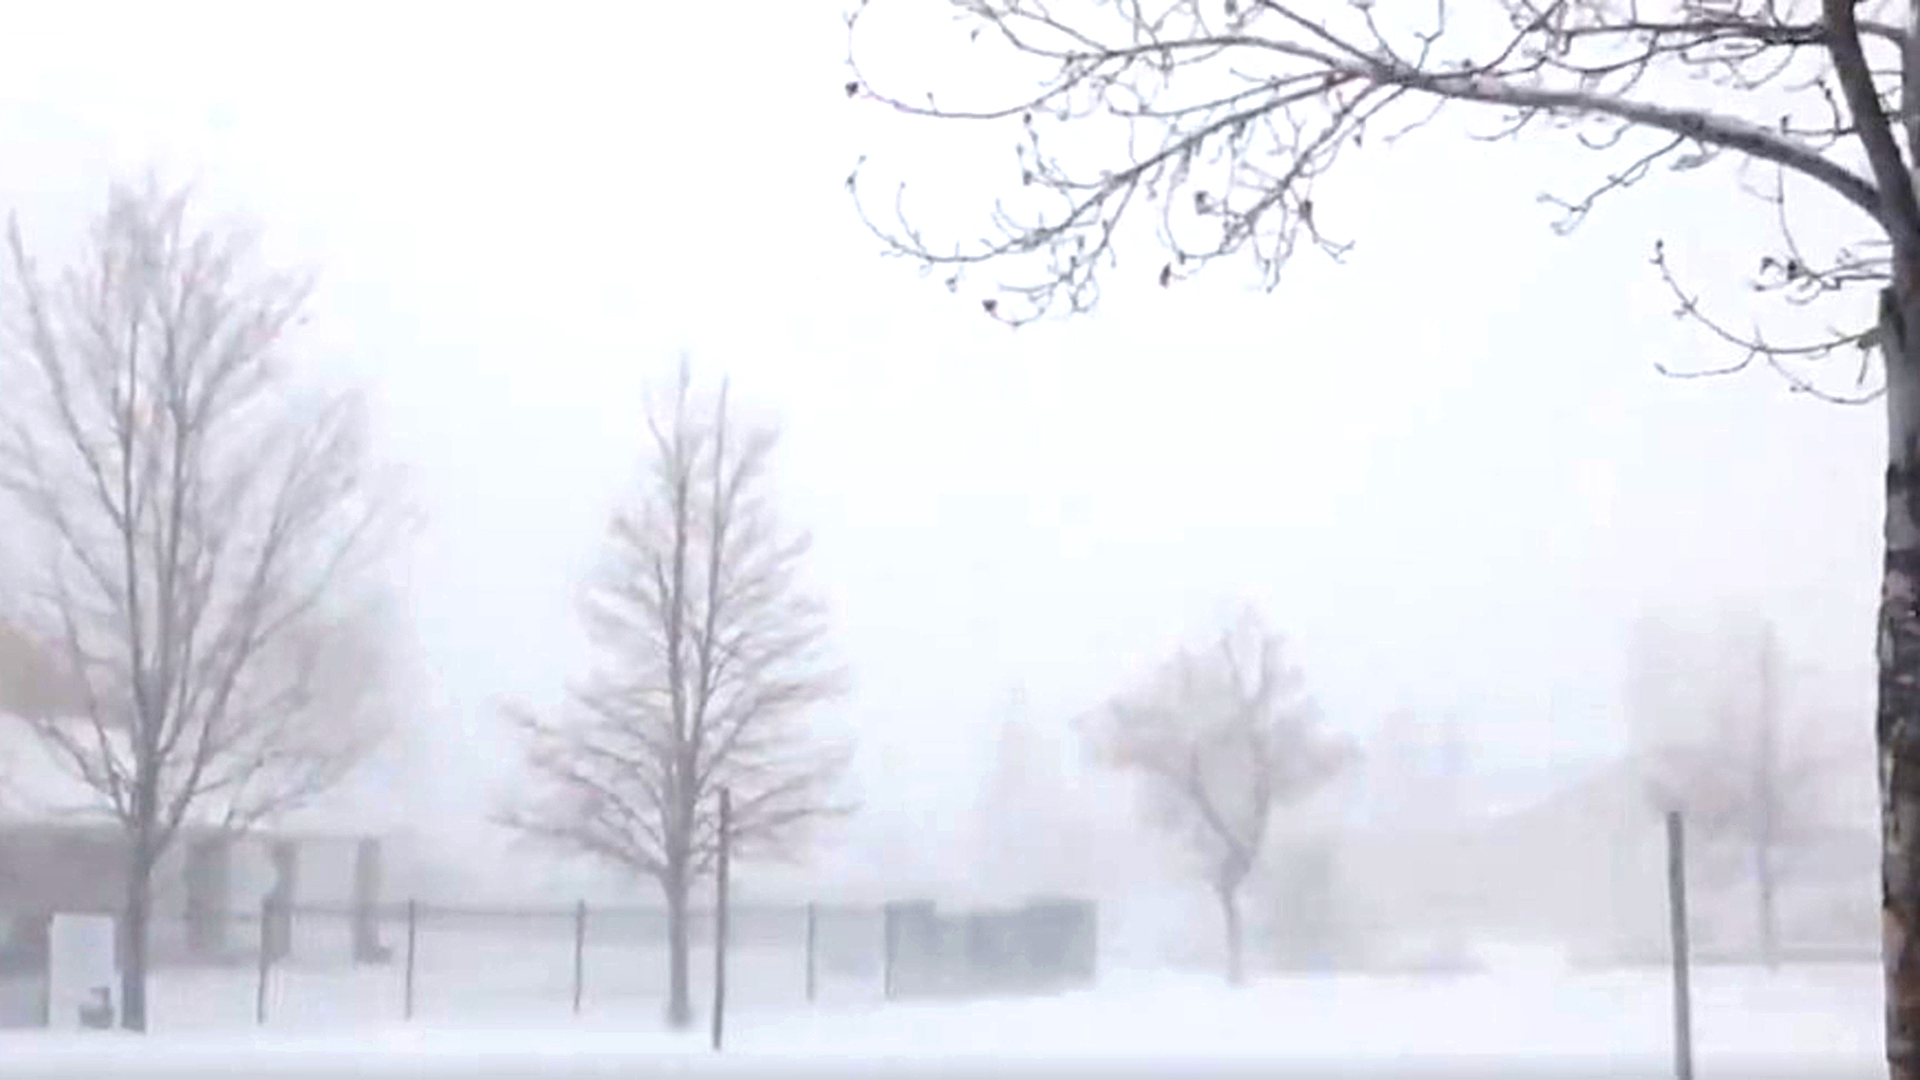 One Of The Biggest Snow-Storms In US History Brings Record-Breaking 1.3 Metres Of Snow And Lots Of Power Outages